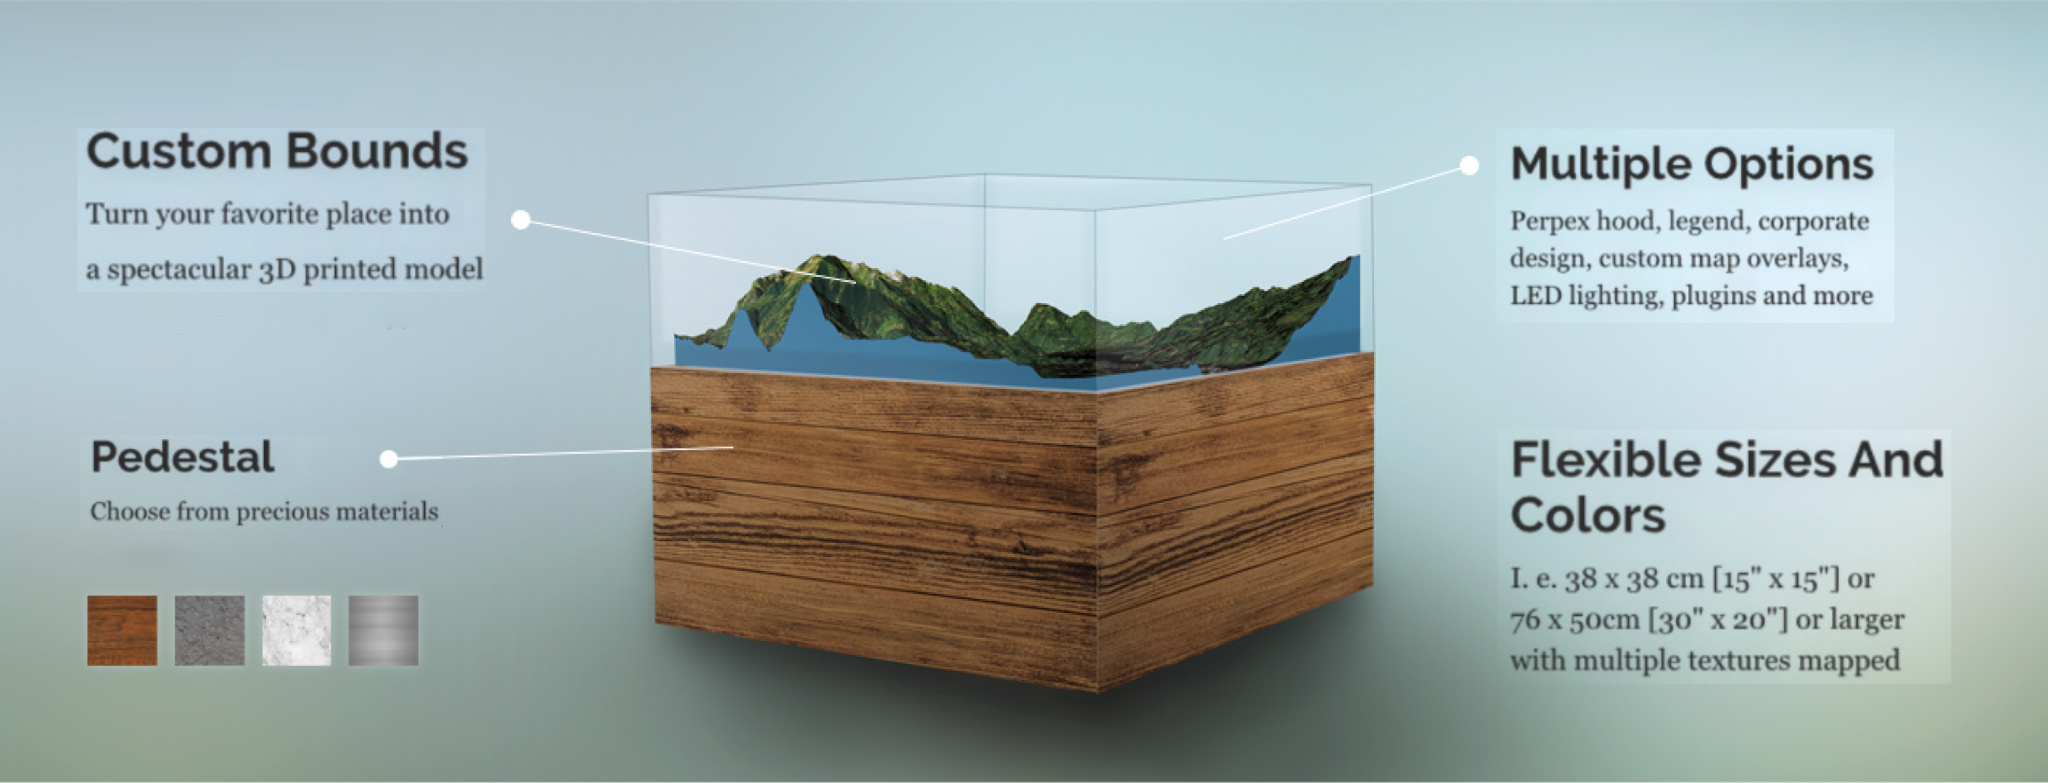 image regarding Free 3d Printable Terrain identify SHAPEwerk Custom made Terrain Maps 3D Released